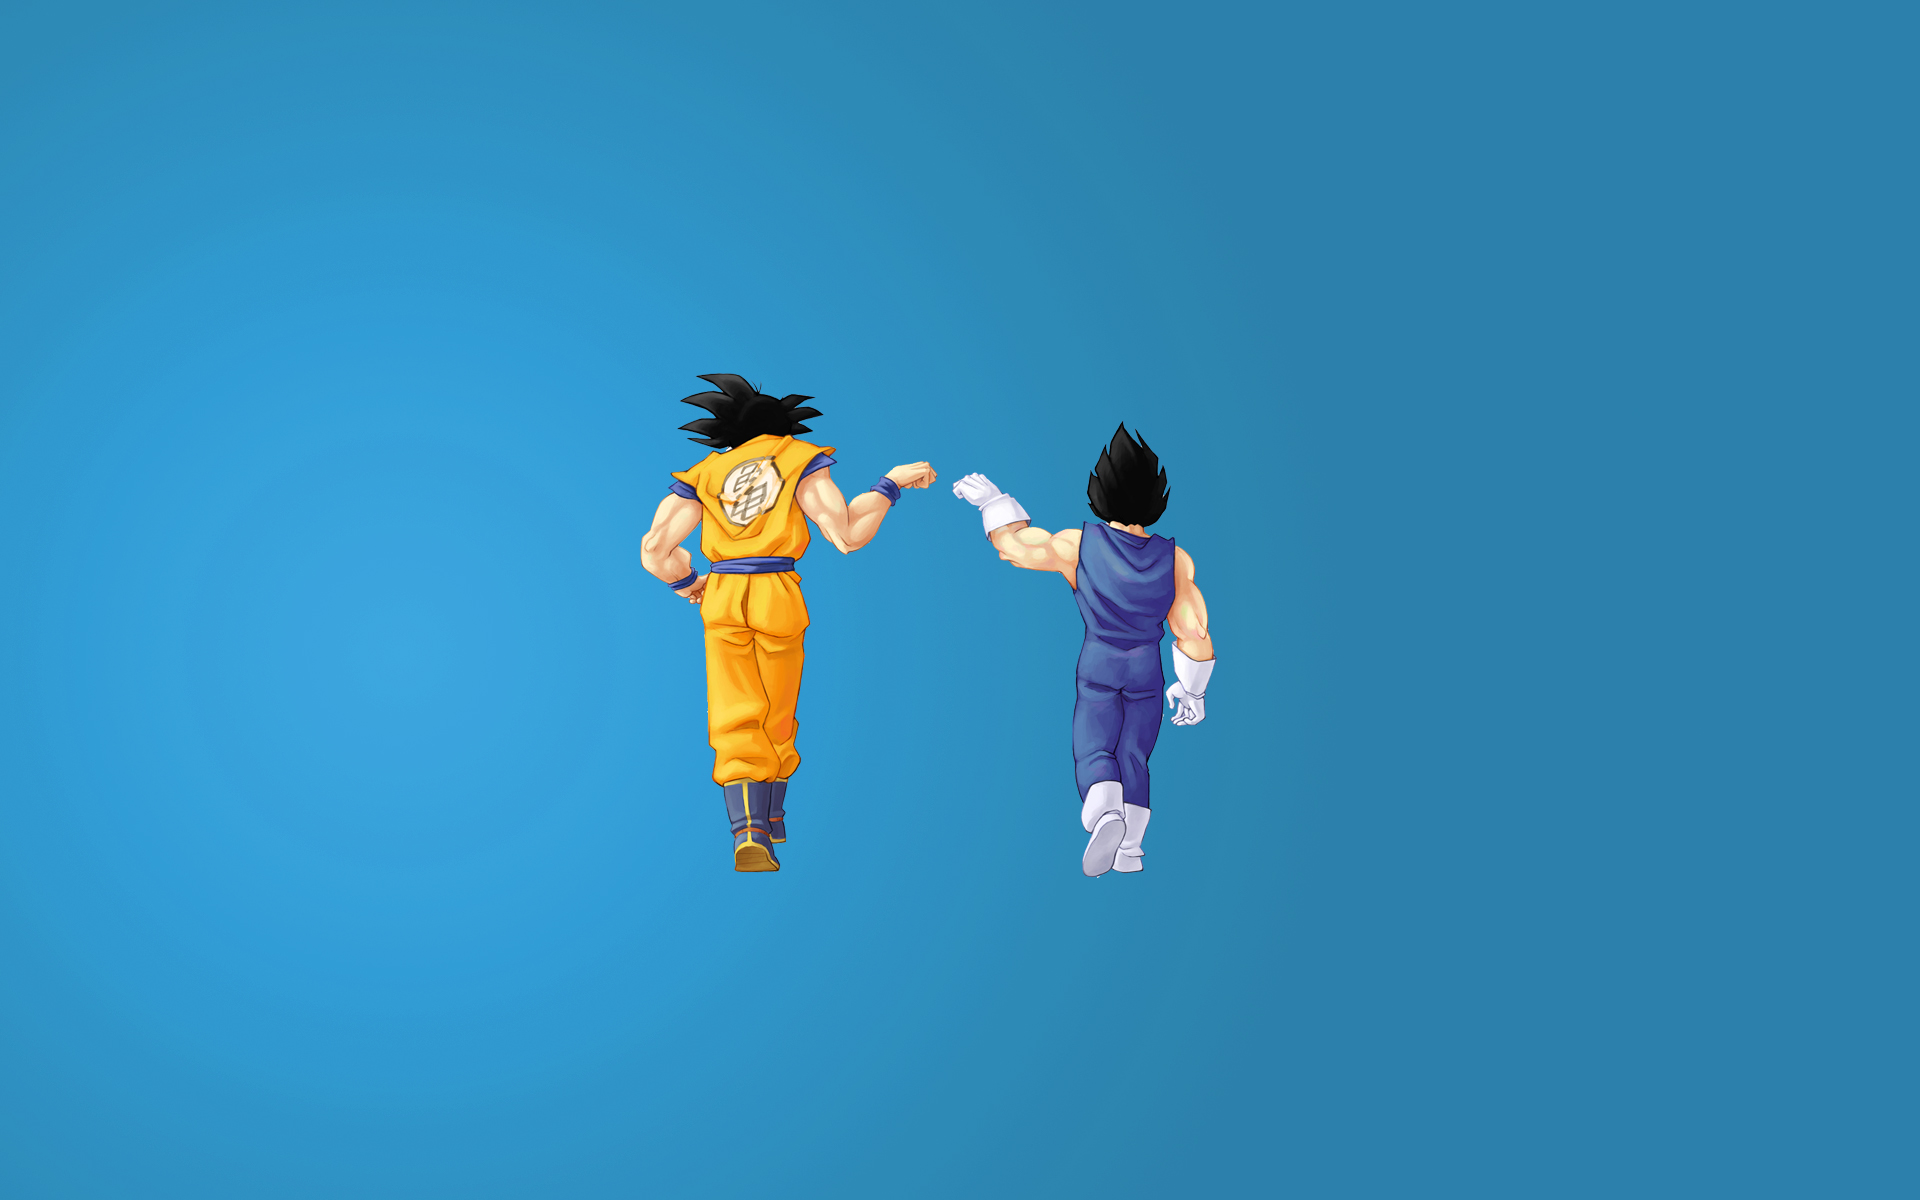 Goku vs Vegeta Iphone Wallpaper Vegeta Goku Wallpaper 1920x1200